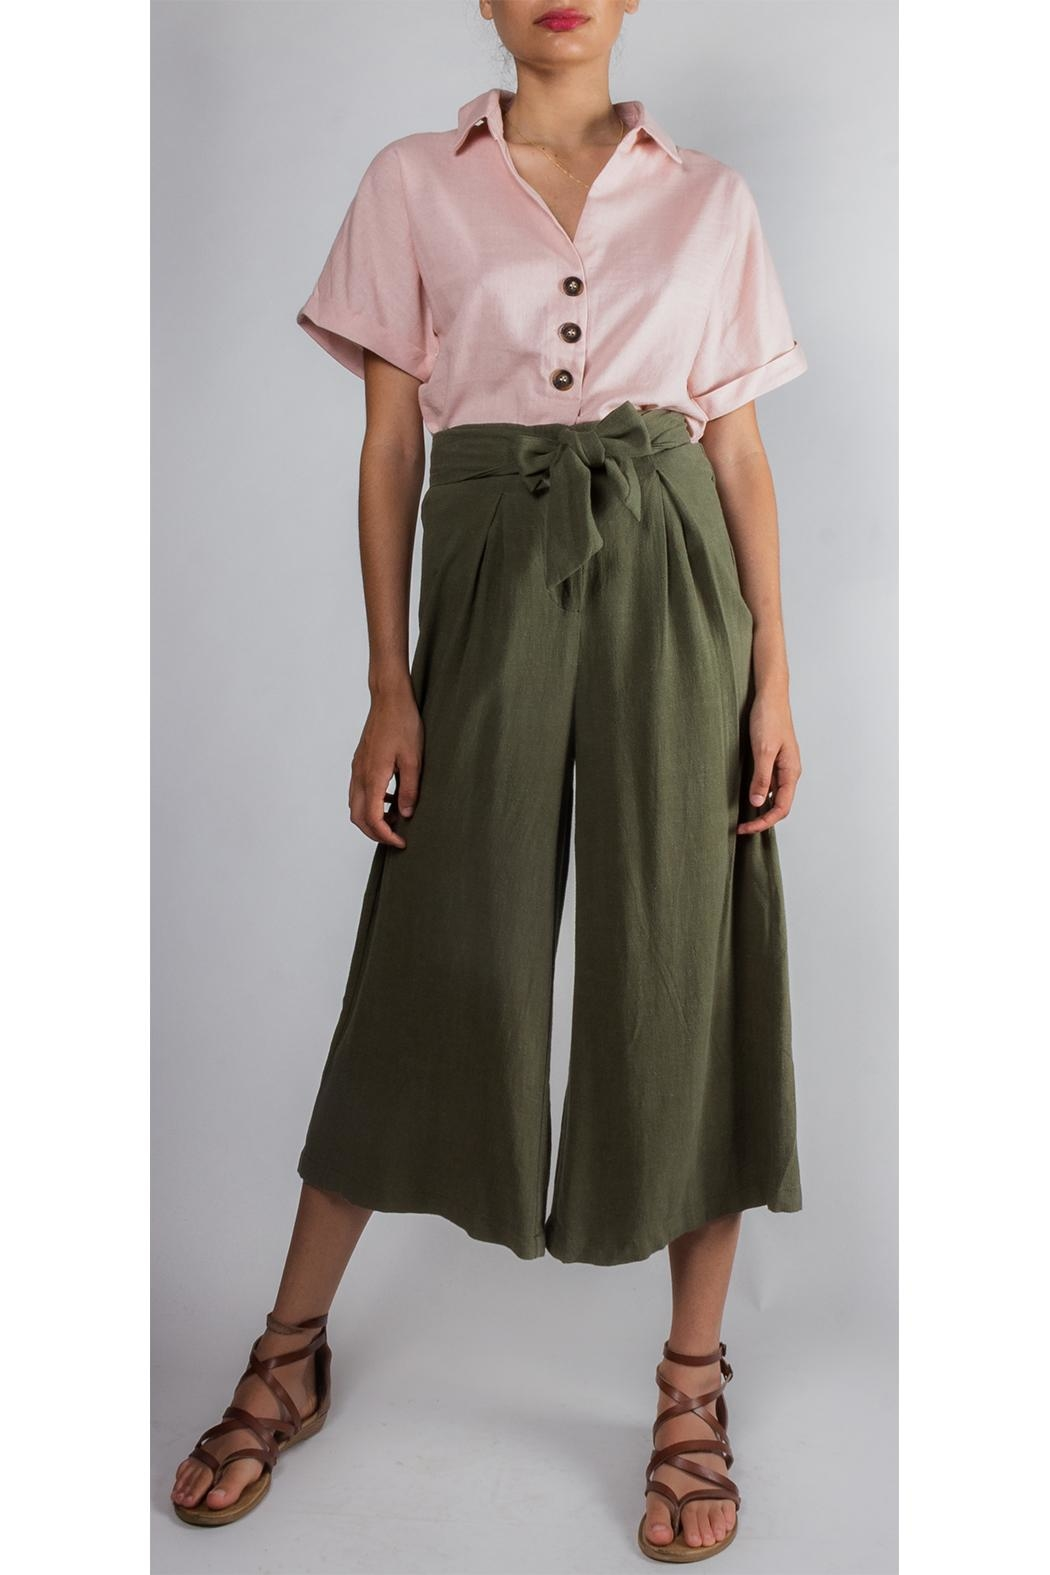 f9a8e02ea3f Illa Illa Tie High-Waisted Linen-Pants from Los Angeles by Goldie s ...